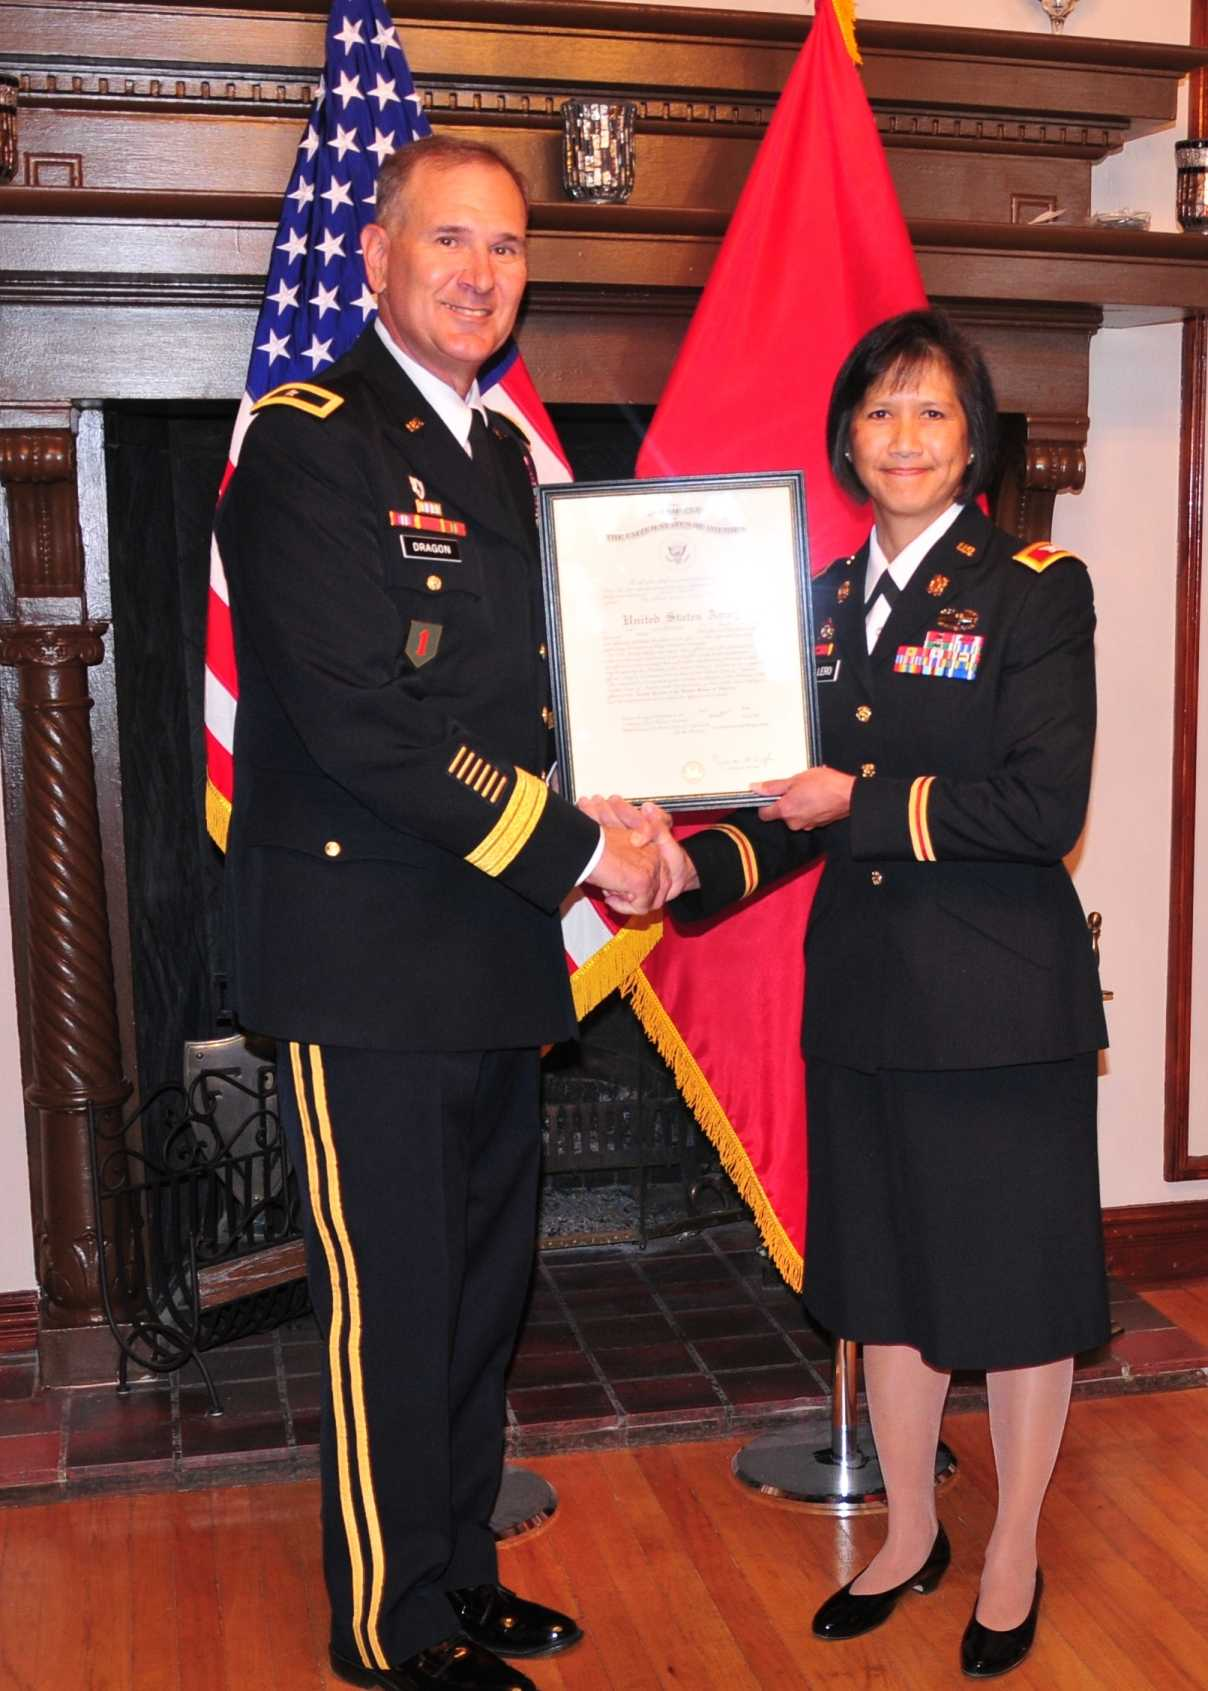 Unf Spinnaker Unf Alum Promoted To Rare U S Army Rank